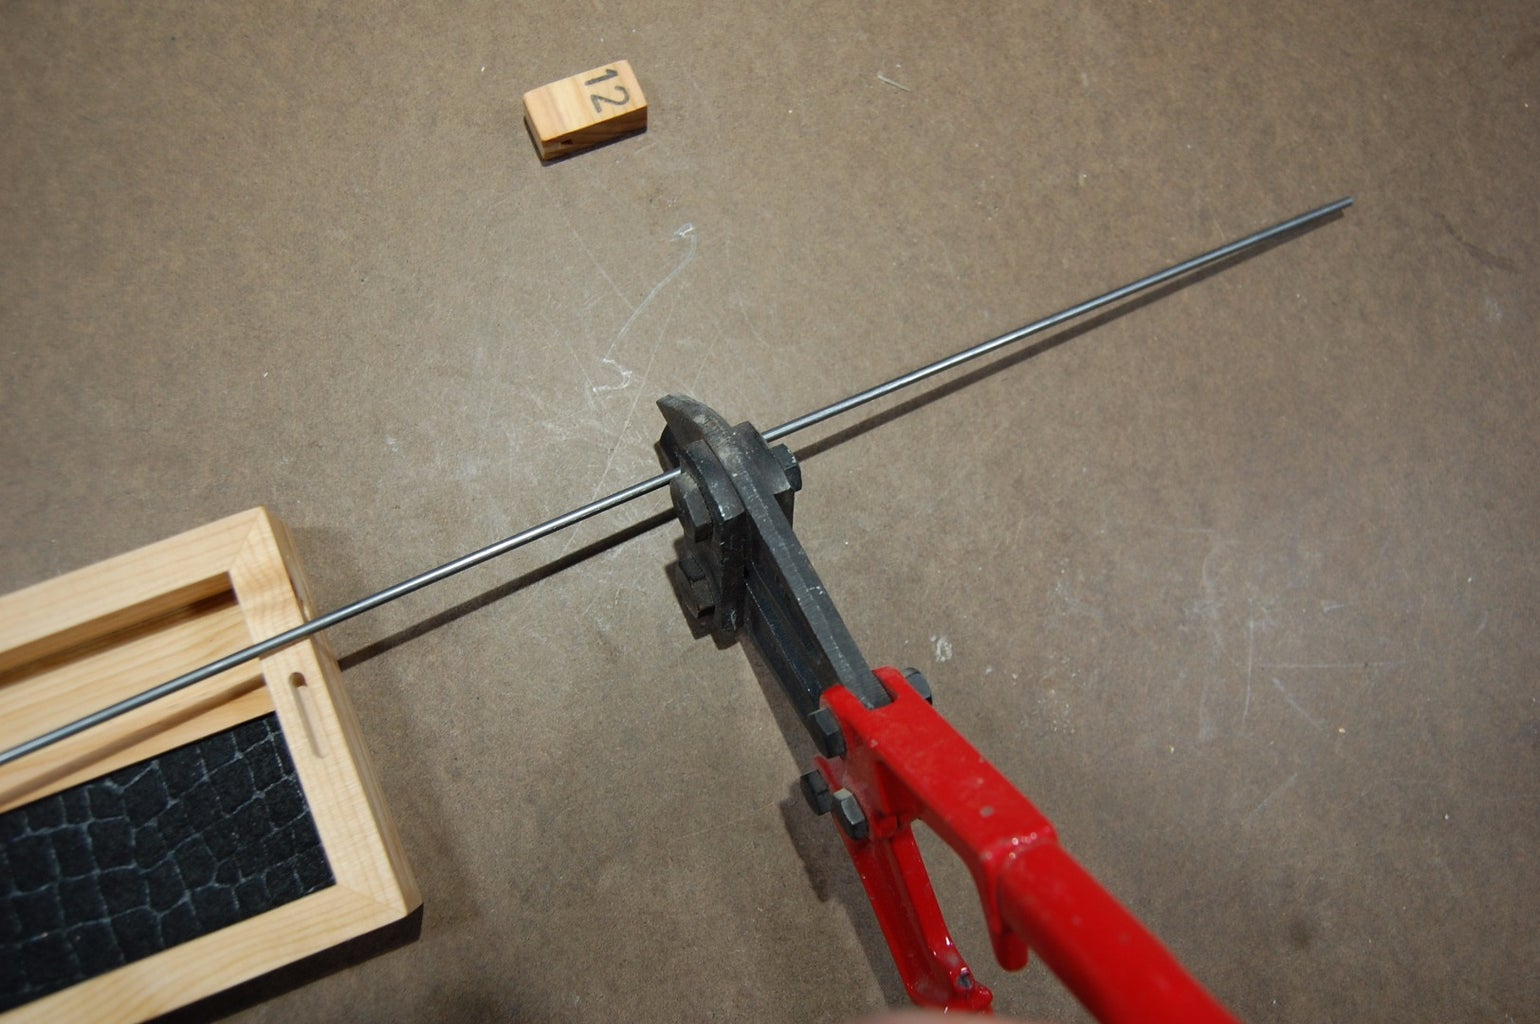 Assembly and Hole Plugging